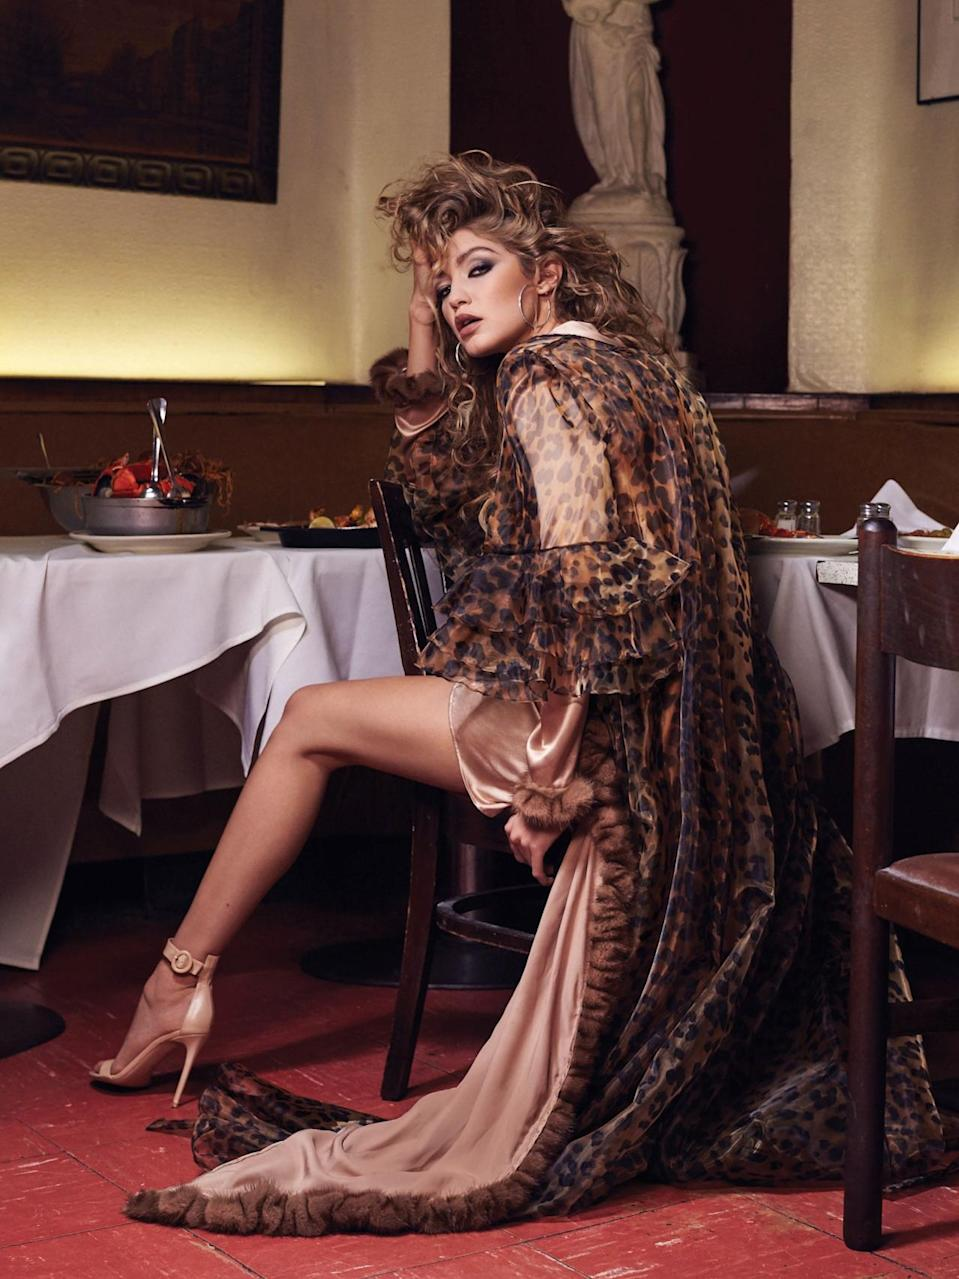 "<p>Gigi Hadid owes a lot to Carine Roitfeld. The editor-in-chief of <i>CR Fashion Book</i> first put the young model on the cover of her magazine three years ago — and now, Hadid's on<i> CR </i>once more. Last week, the 20-year-old <a href=""https://www.instagram.com/p/BCI7c-NjCUs/?taken-by=gigihadid"" rel=""nofollow noopener"" target=""_blank"" data-ylk=""slk:shared a photo of Issue 8"" class=""link rapid-noclick-resp"">shared a photo of Issue 8</a>, featuring her in a tight black corseted bodysuit, door knocker earrings, and permed hair accented with an American flag-patterned bow. And now, we've gotten our first look at the accompanying shoot — which sees a super sexy, '80s-inspired Hadid smoldering in what appears to be an Italian restaurant. <i>Mamma mia</i>, indeed! Hadid <a href=""https://www.instagram.com/p/BCI7c-NjCUs/?taken-by=gigihadid"" rel=""nofollow noopener"" target=""_blank"" data-ylk=""slk:thanked Roitfeld for her support"" class=""link rapid-noclick-resp"">thanked Roitfeld for her support</a> on Instagram, writing, ""I know that my career would not be the same without Carine. Thank you for believing in and guiding me & for being an unequivocal mentor and friend; every day I get to work with you is an honor."" Head to<i> <a href=""http://www.crfashionbook.com/book/gigi-hadid-cr-8/"" rel=""nofollow noopener"" target=""_blank"" data-ylk=""slk:CR Fashion Book"" class=""link rapid-noclick-resp"">CR Fashion Book</a></i> for more of her cover spread.</p>"